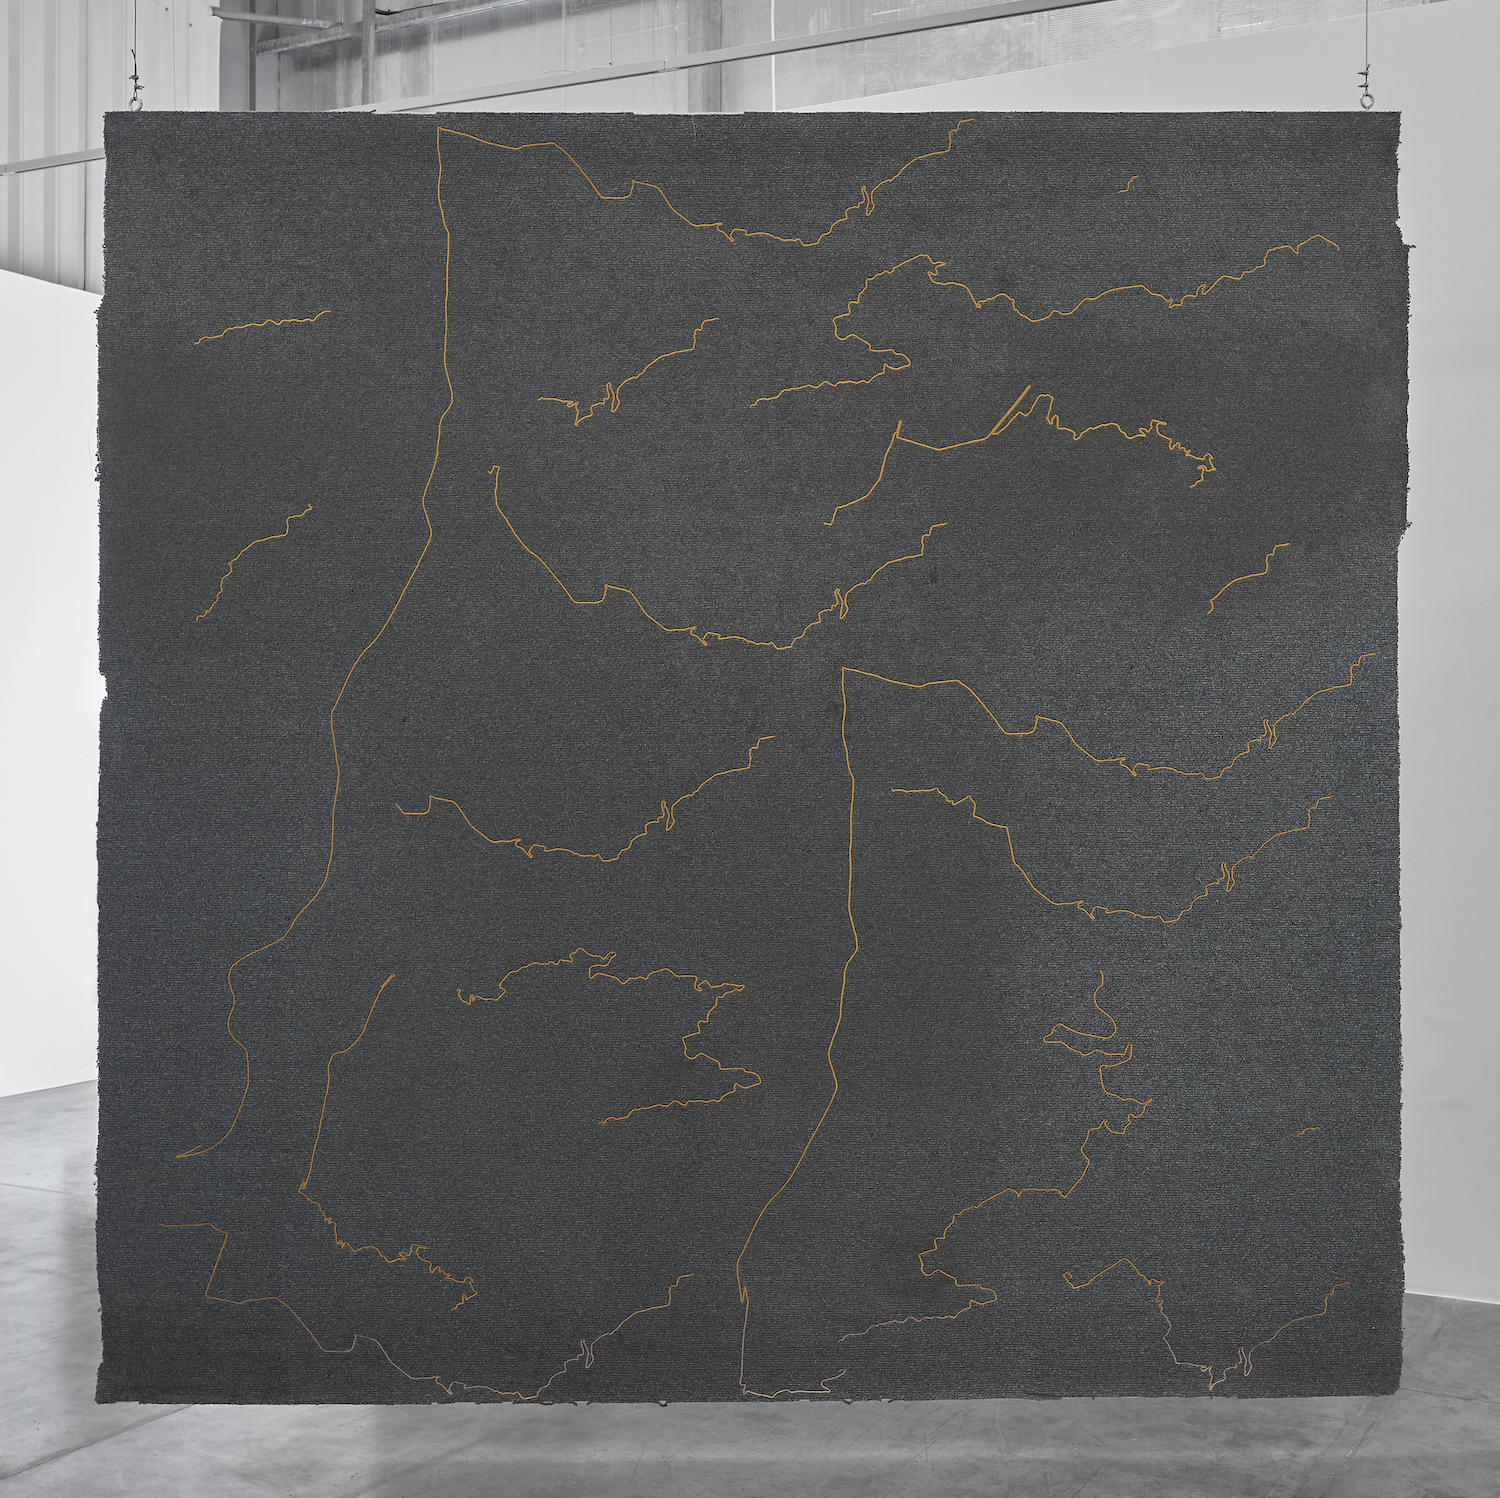 Stéphanie Saadé  The Encounter of the First and Last Particles of Dust 2019 Old carpet, embroidery 333.5 x 336.5 cm The carpet of the room which the artist occupied as a teenager, from 1995 to 2001, is torn off and embroidered with the 18 most significant trajectories underwent during this time span.